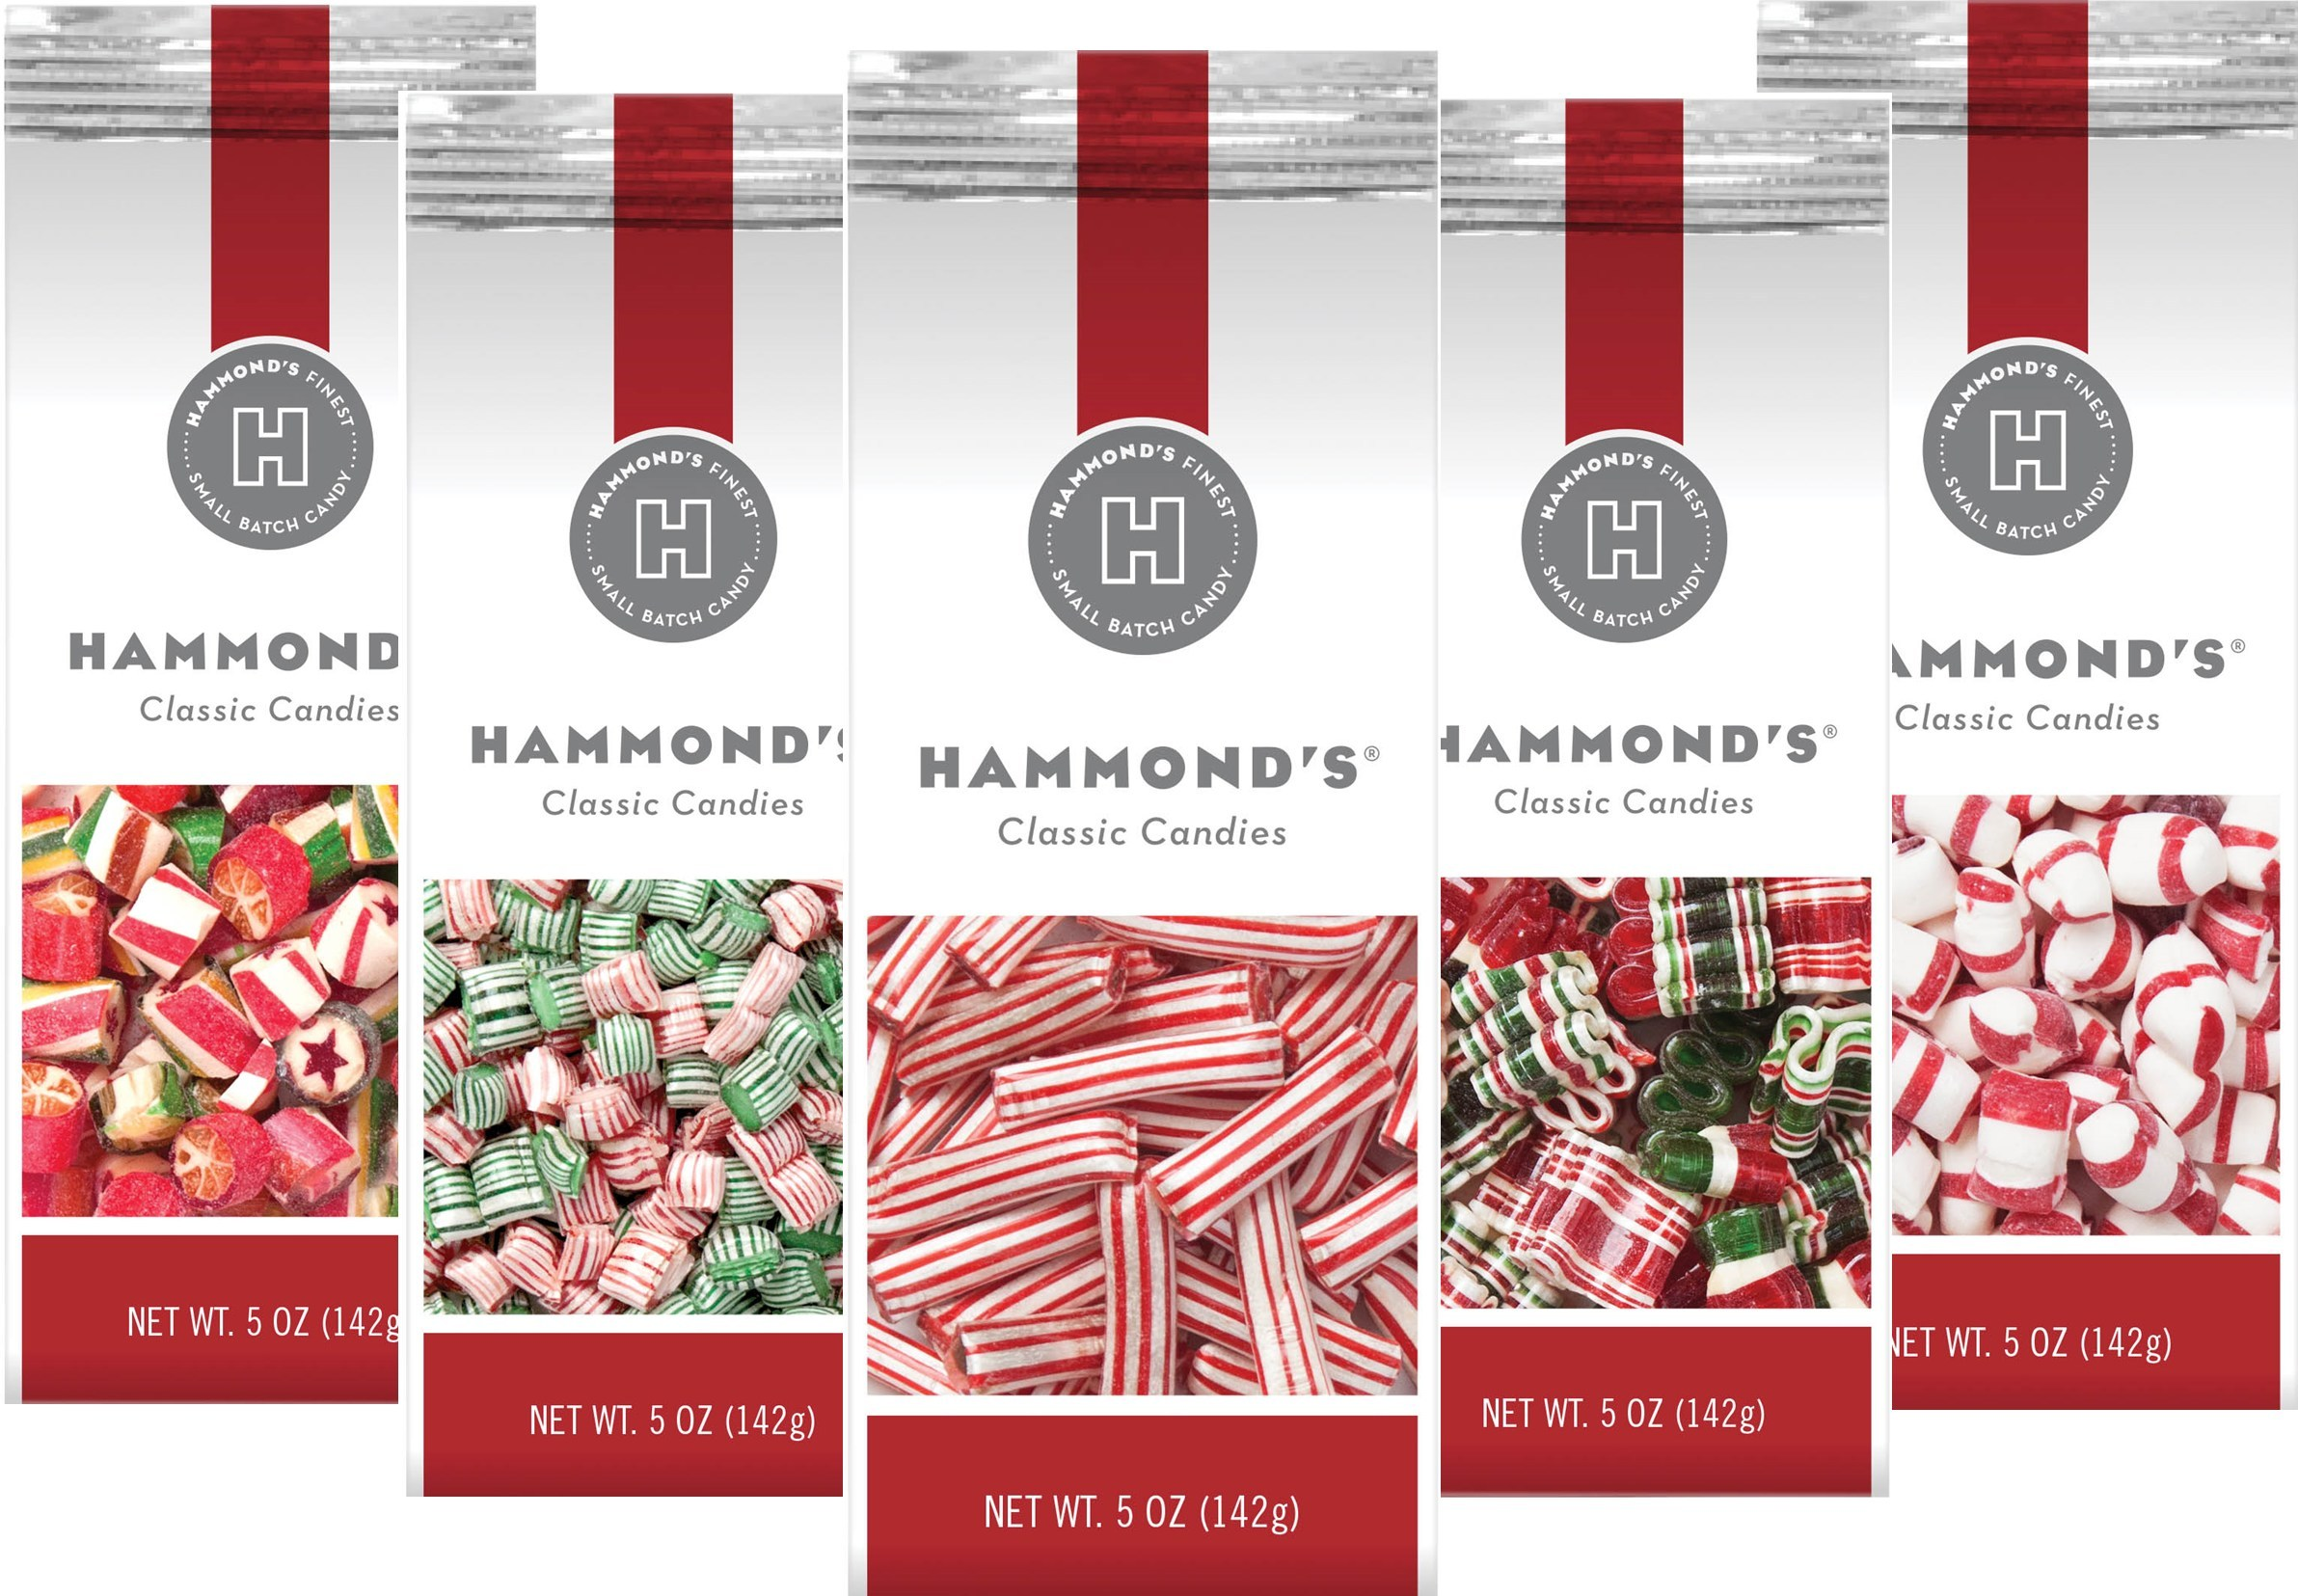 Hammond's Launches New Look For Holiday Gift Bags